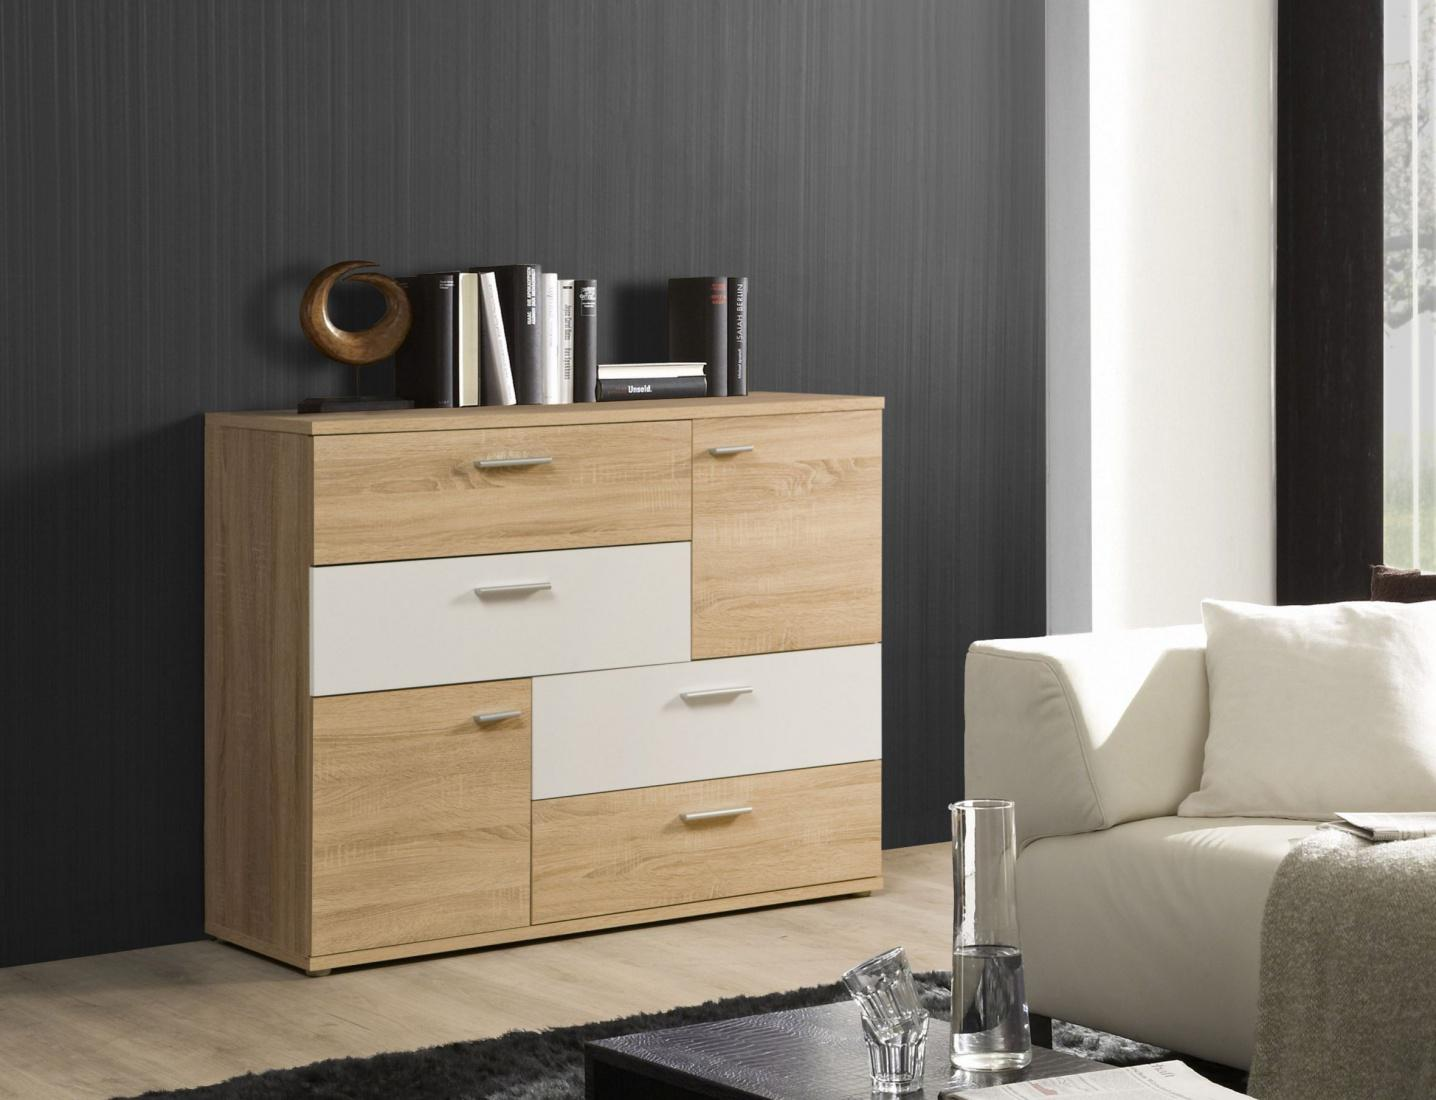 kommode ulrika 2 t rig in sonoma eiche wei kaufen bei m bel lux. Black Bedroom Furniture Sets. Home Design Ideas